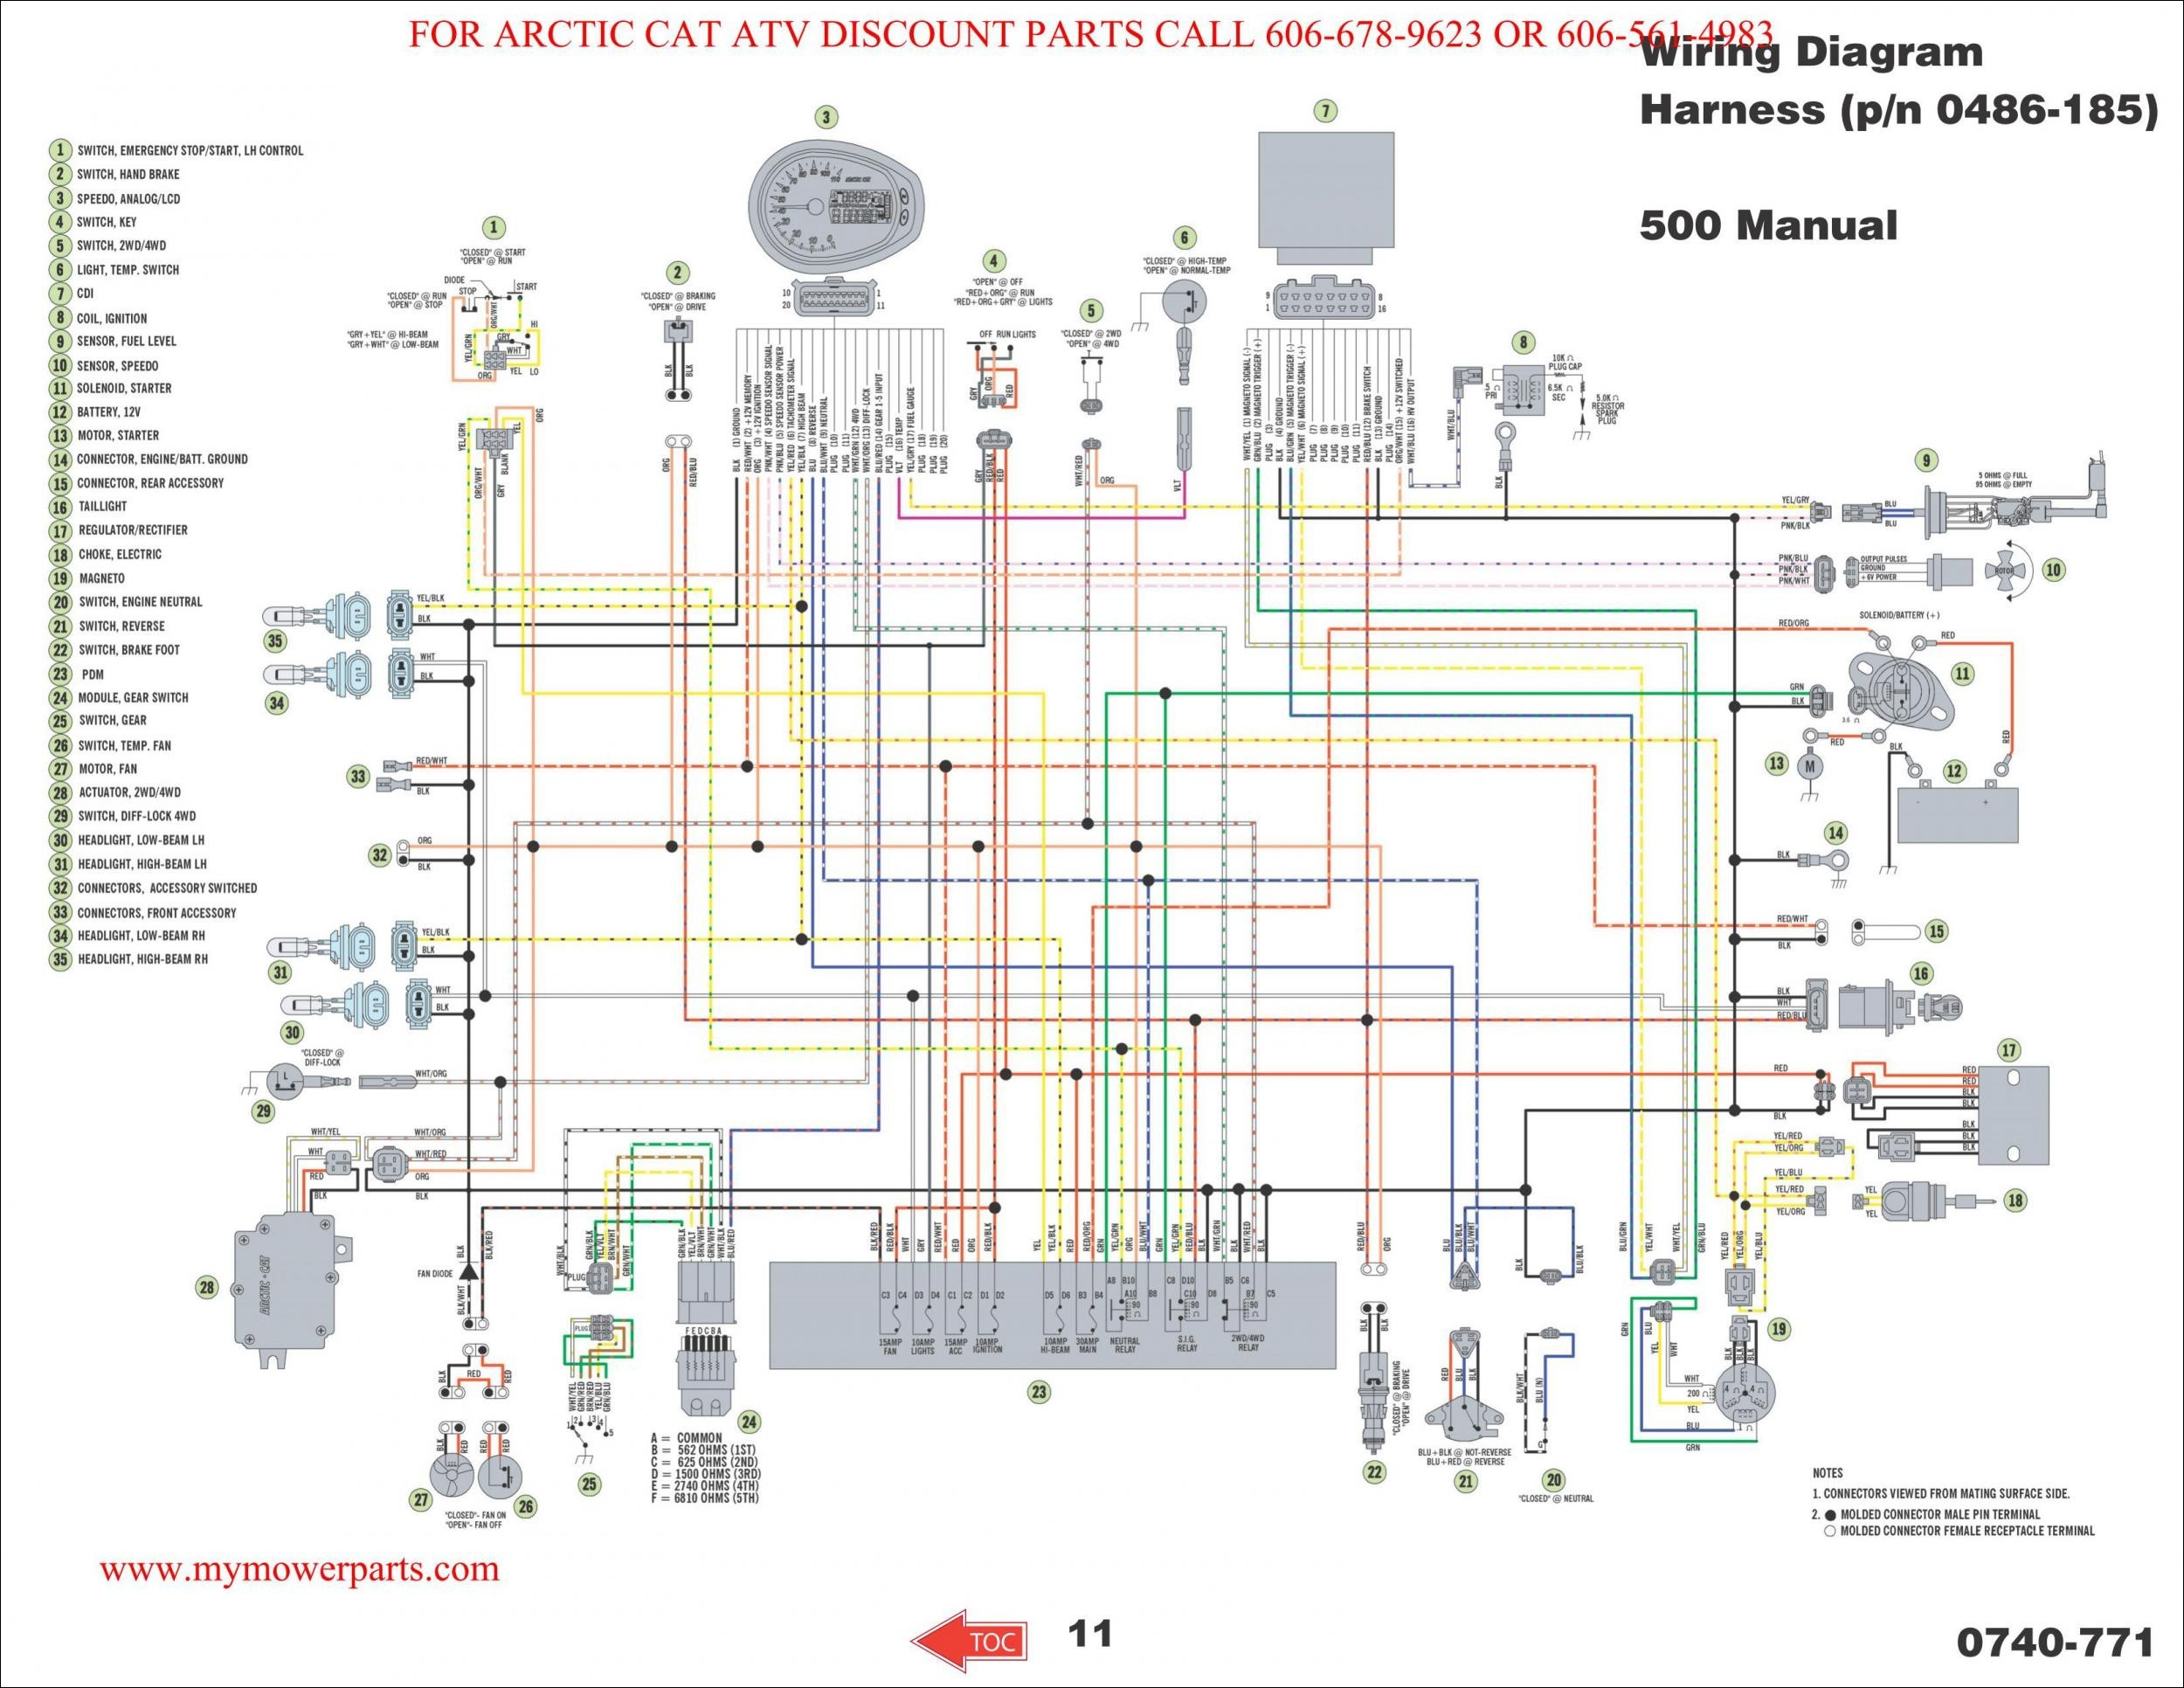 bombardier quest 500 wiring diagram data wiring diagrams u2022 rh mikeadkinsguitar com 2002 bombardier quest 500 wiring diagram 2003 bombardier quest 650 wiring diagram